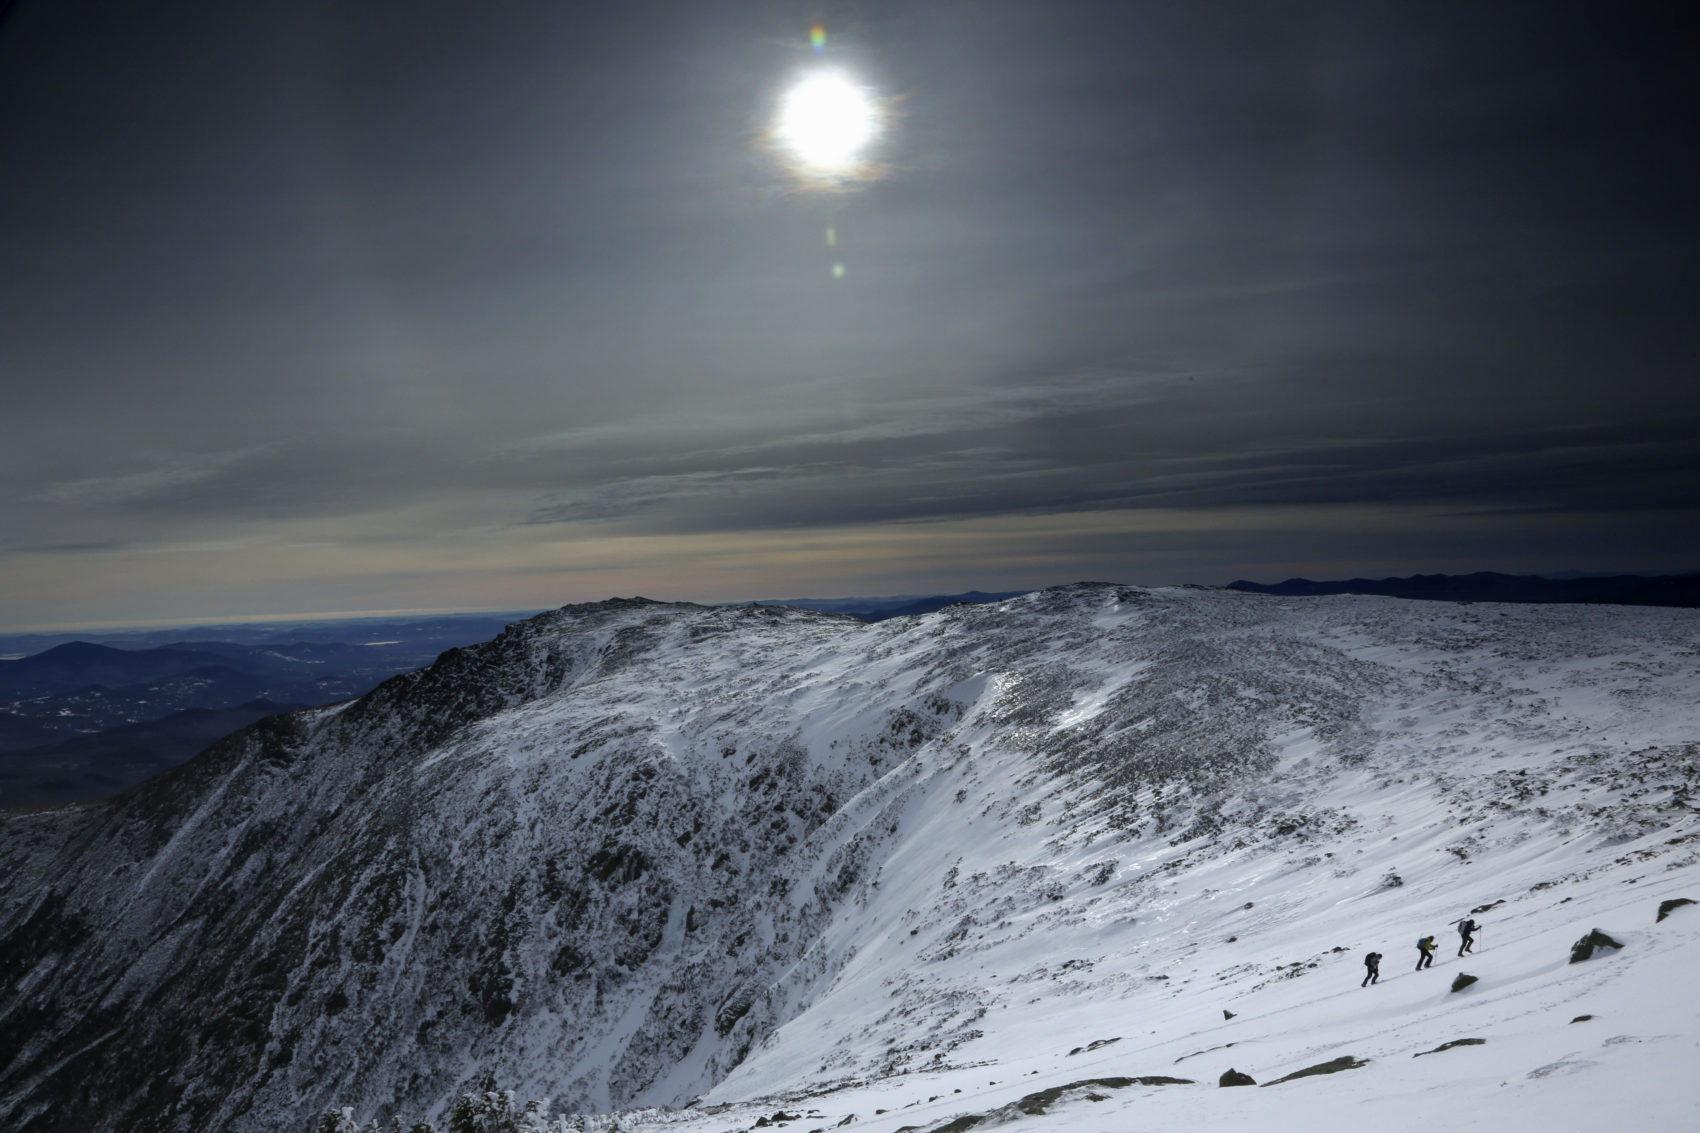 Mount Washington under a midday winter solstice sun on Dec. 21 in New Hampshire. (Robert F. Bukaty/AP)